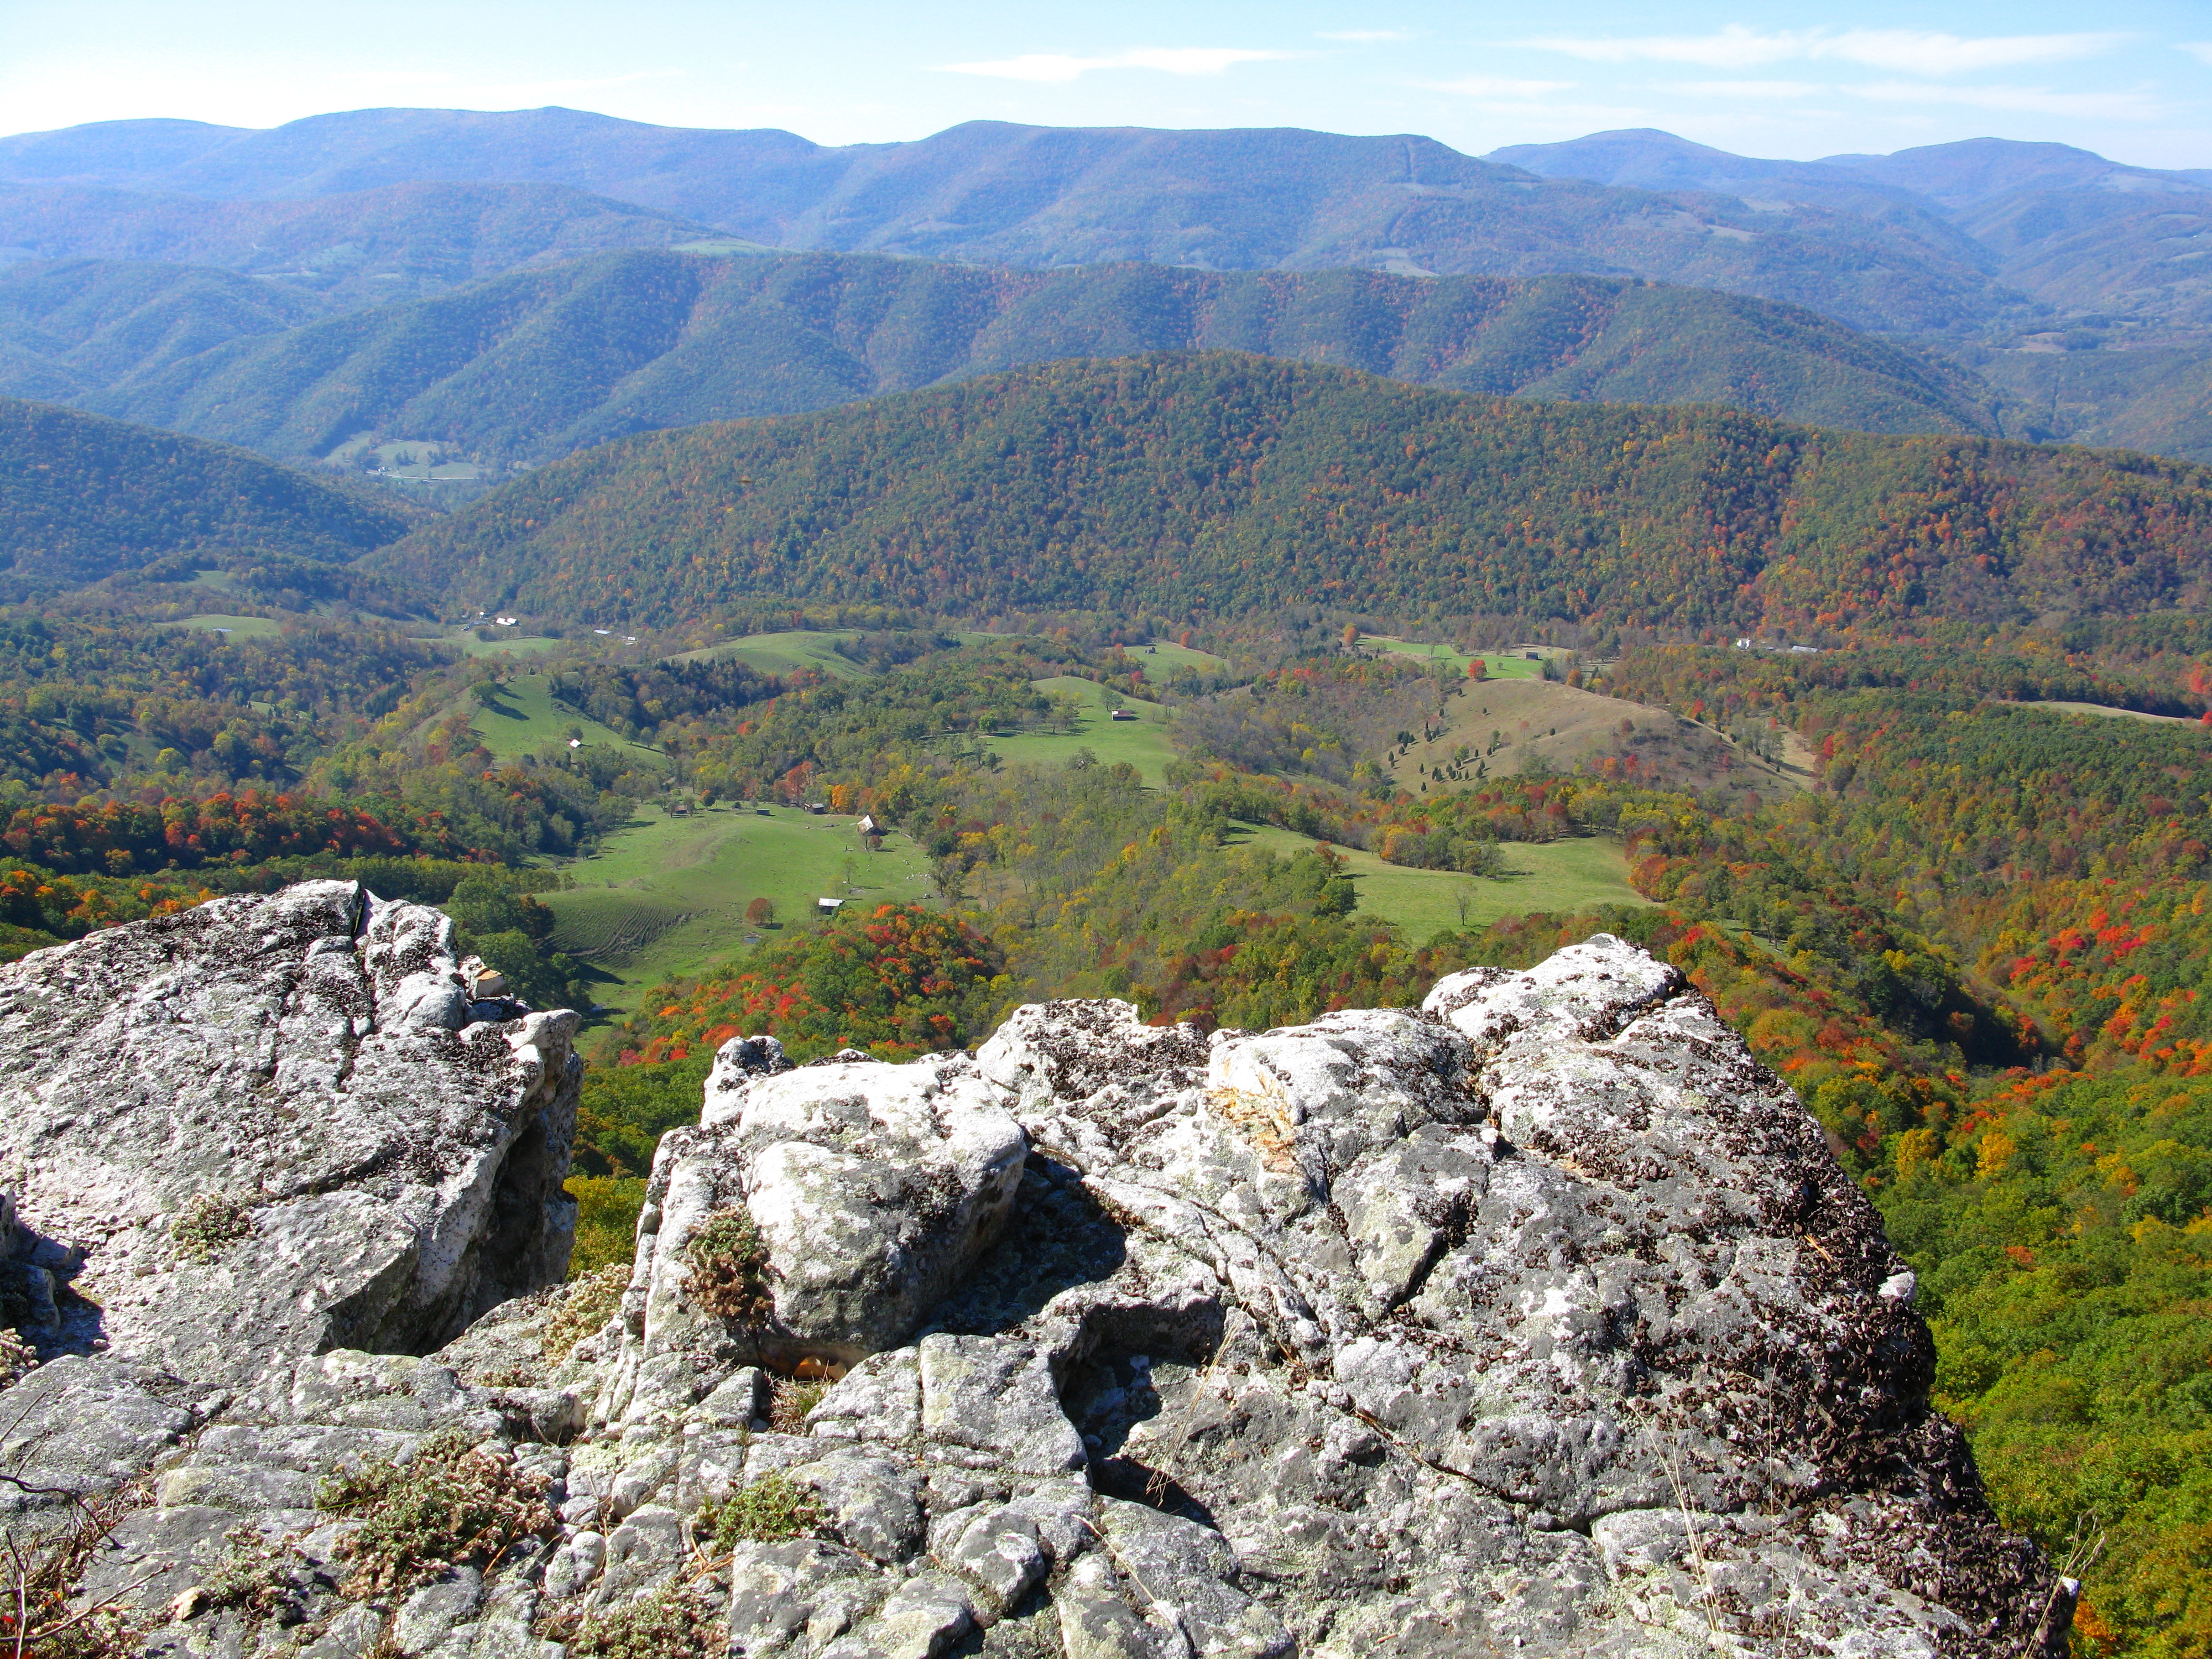 seneca rocks cougars dating site 101 american geo-sites you've gotta see relative age dating: 1 absolute age dating: 4 seneca rocks, west virginia 204.